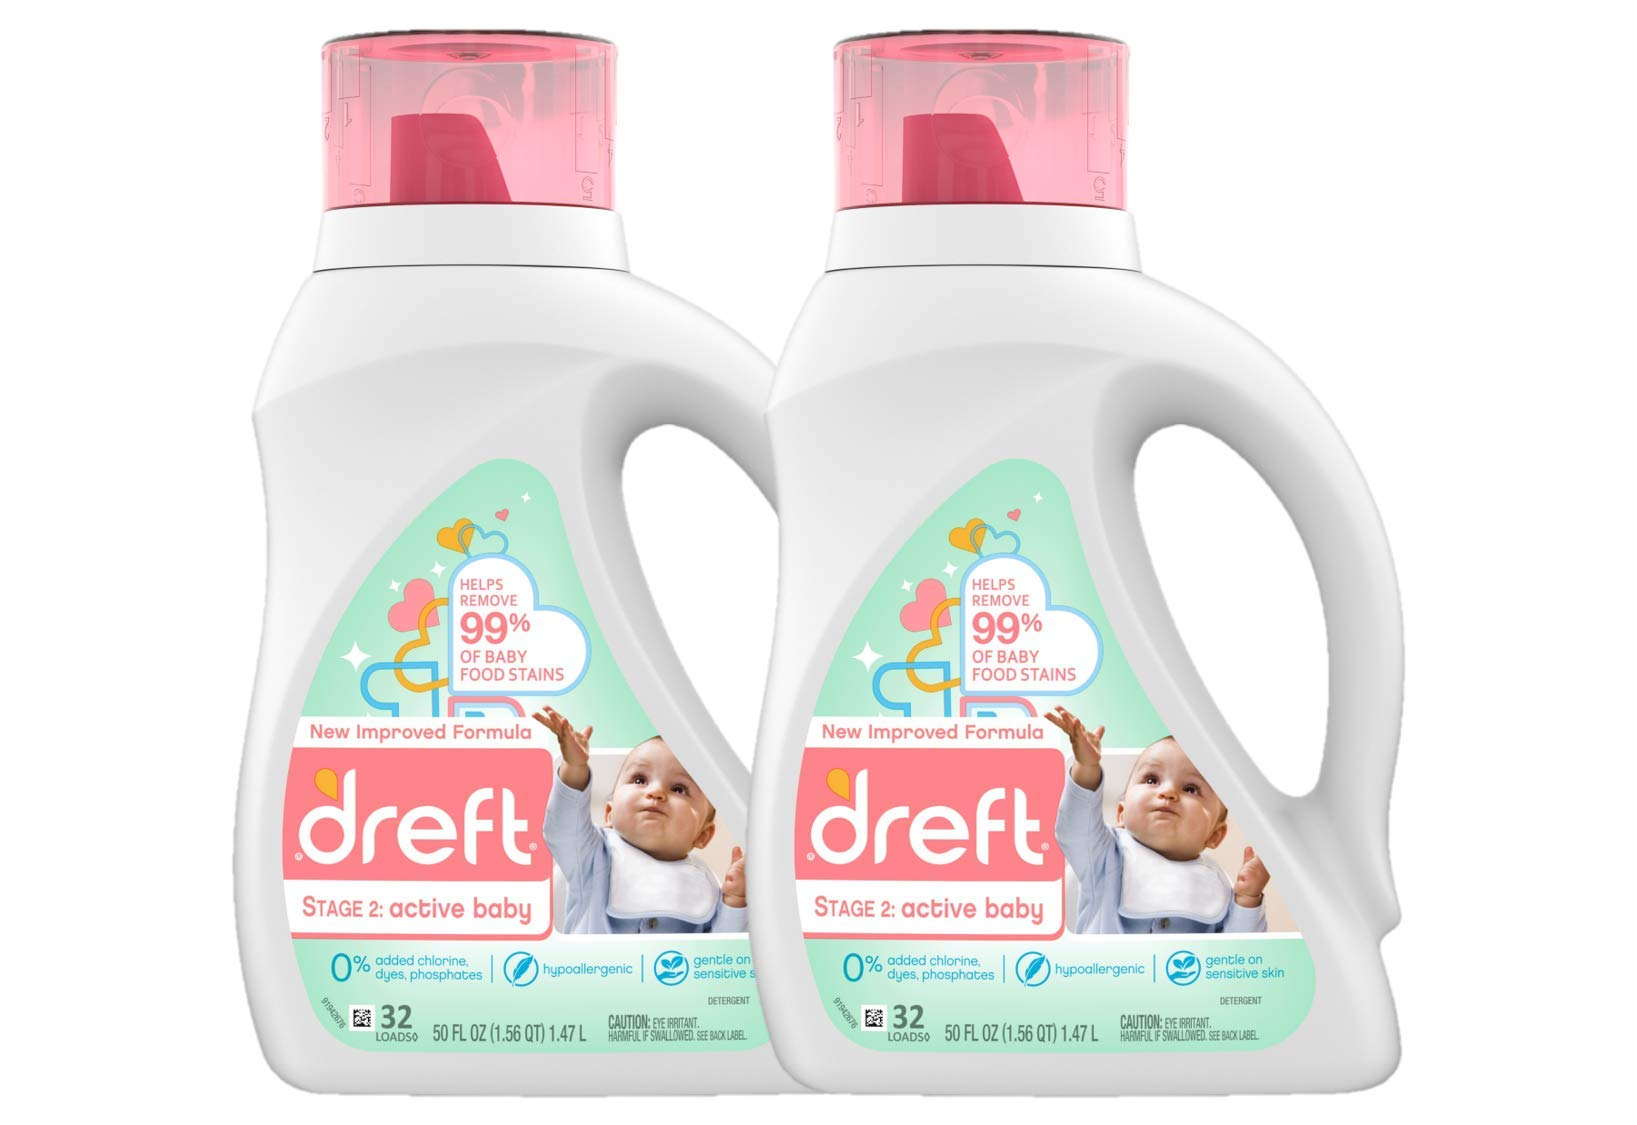 Dreft Stage 2: Baby Liquid Laundry Detergent Soap, Natural for Newborn, or Infant, HE, 64 Total Loads (Pack of 2) - Unscented and Hypoallergenic for Sensitive Skin